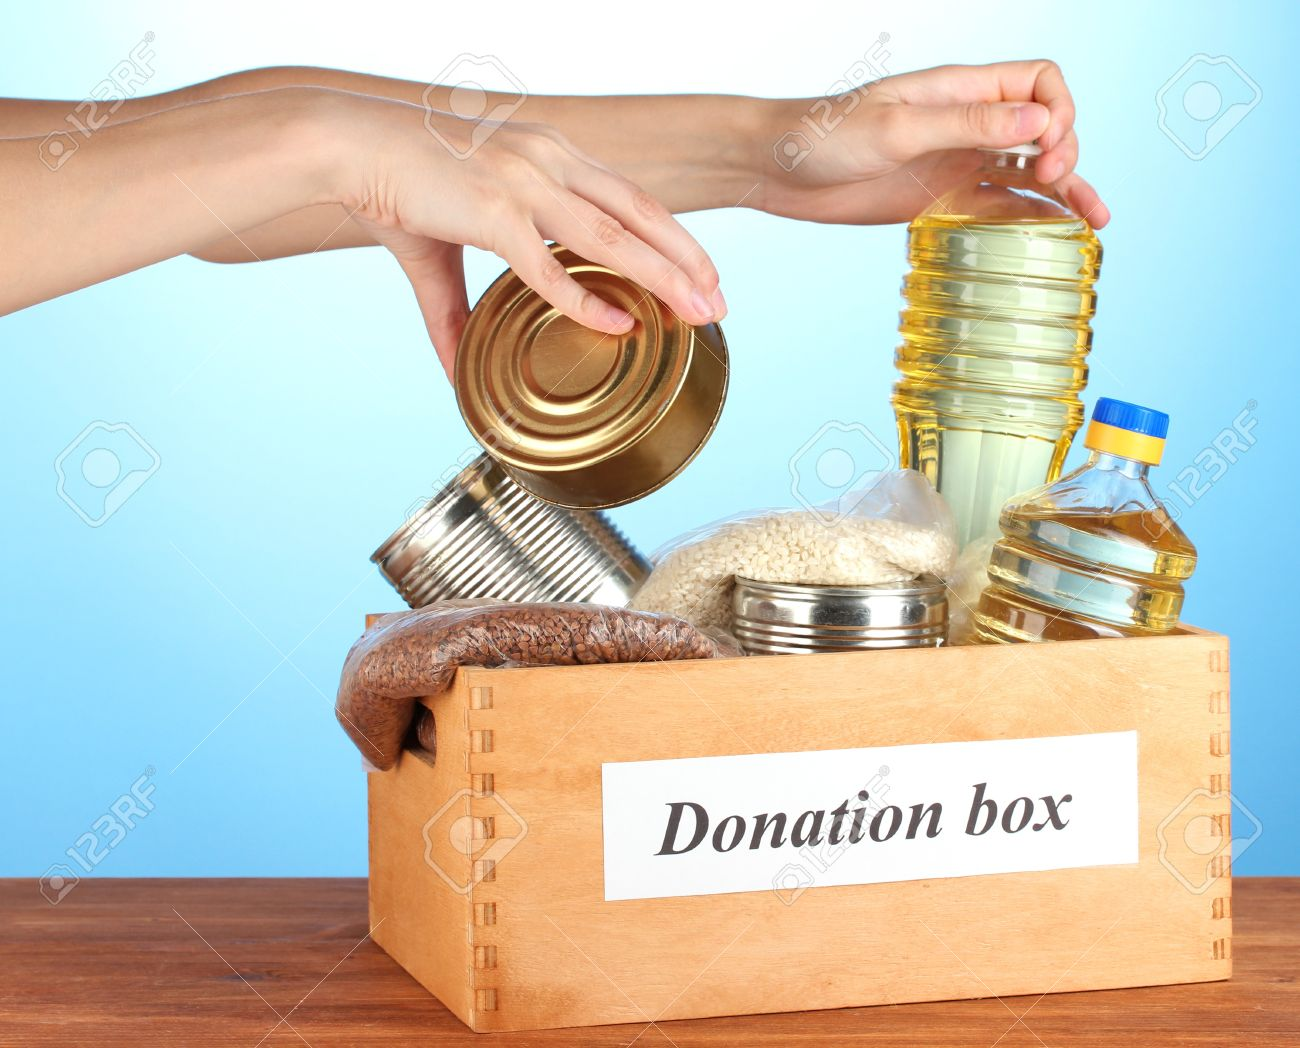 Donation box with food on blue background close-up Stock Photo - 15738751